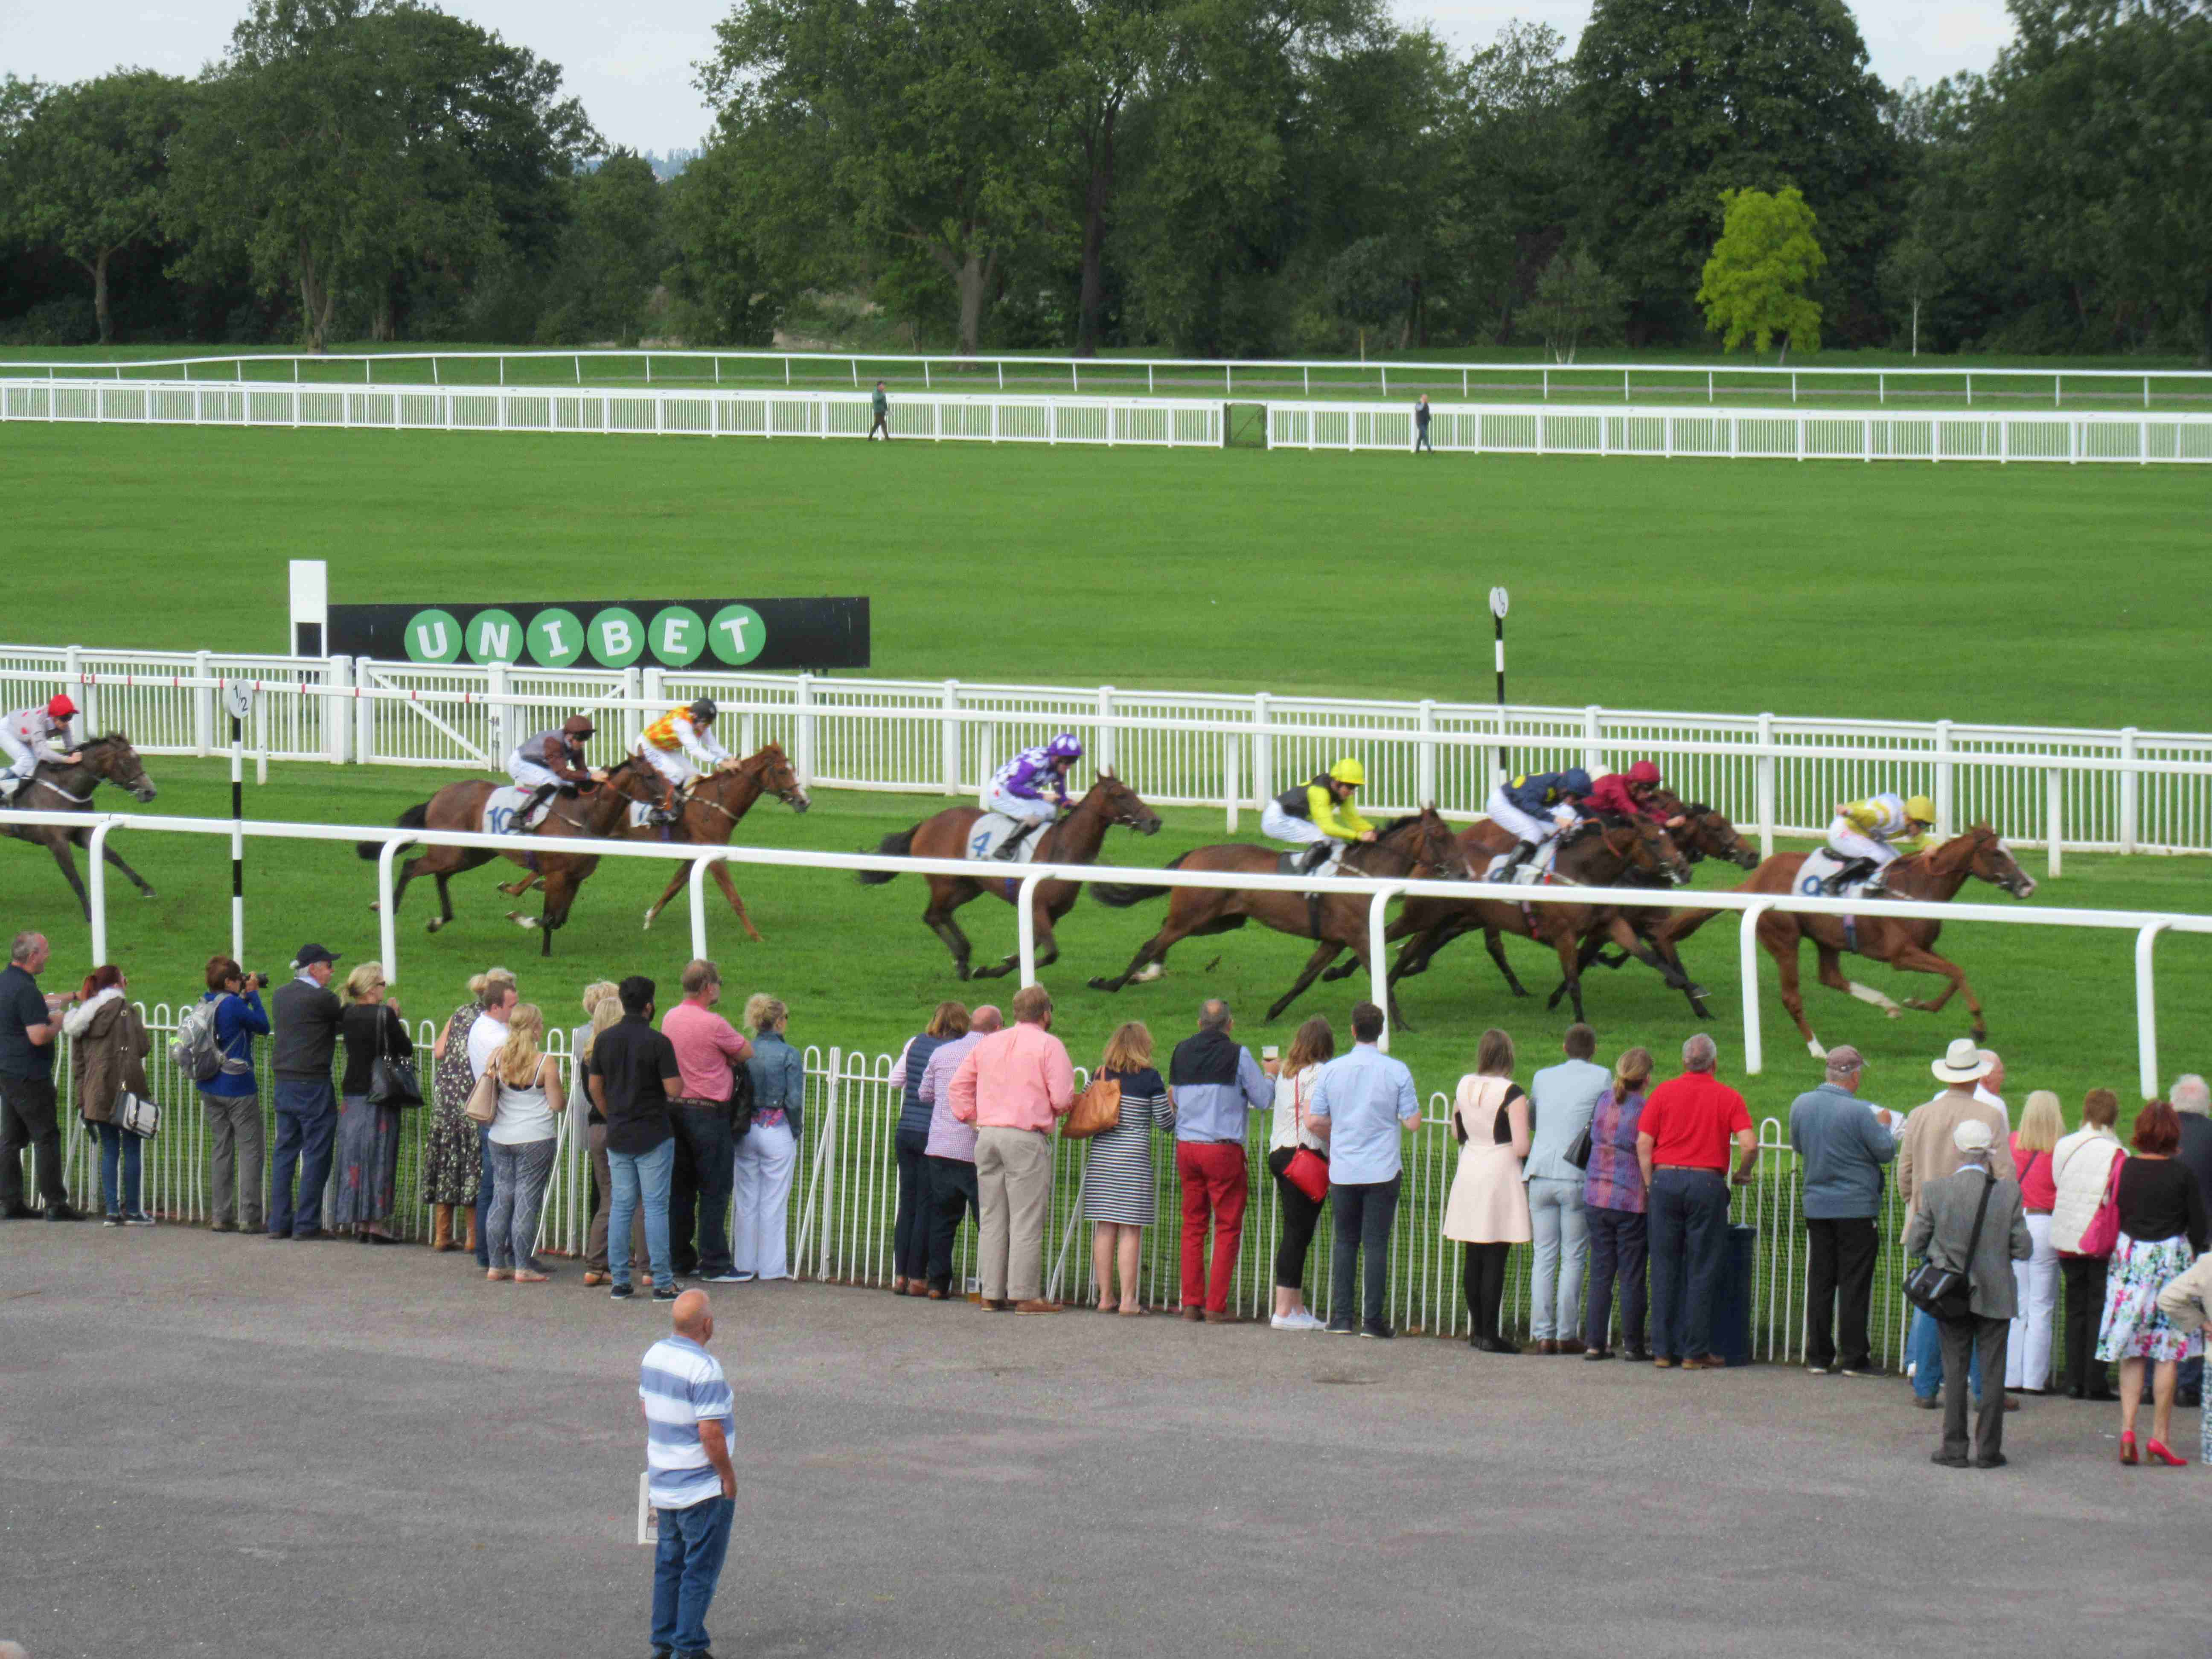 Some of the fun we have - A day at the Races